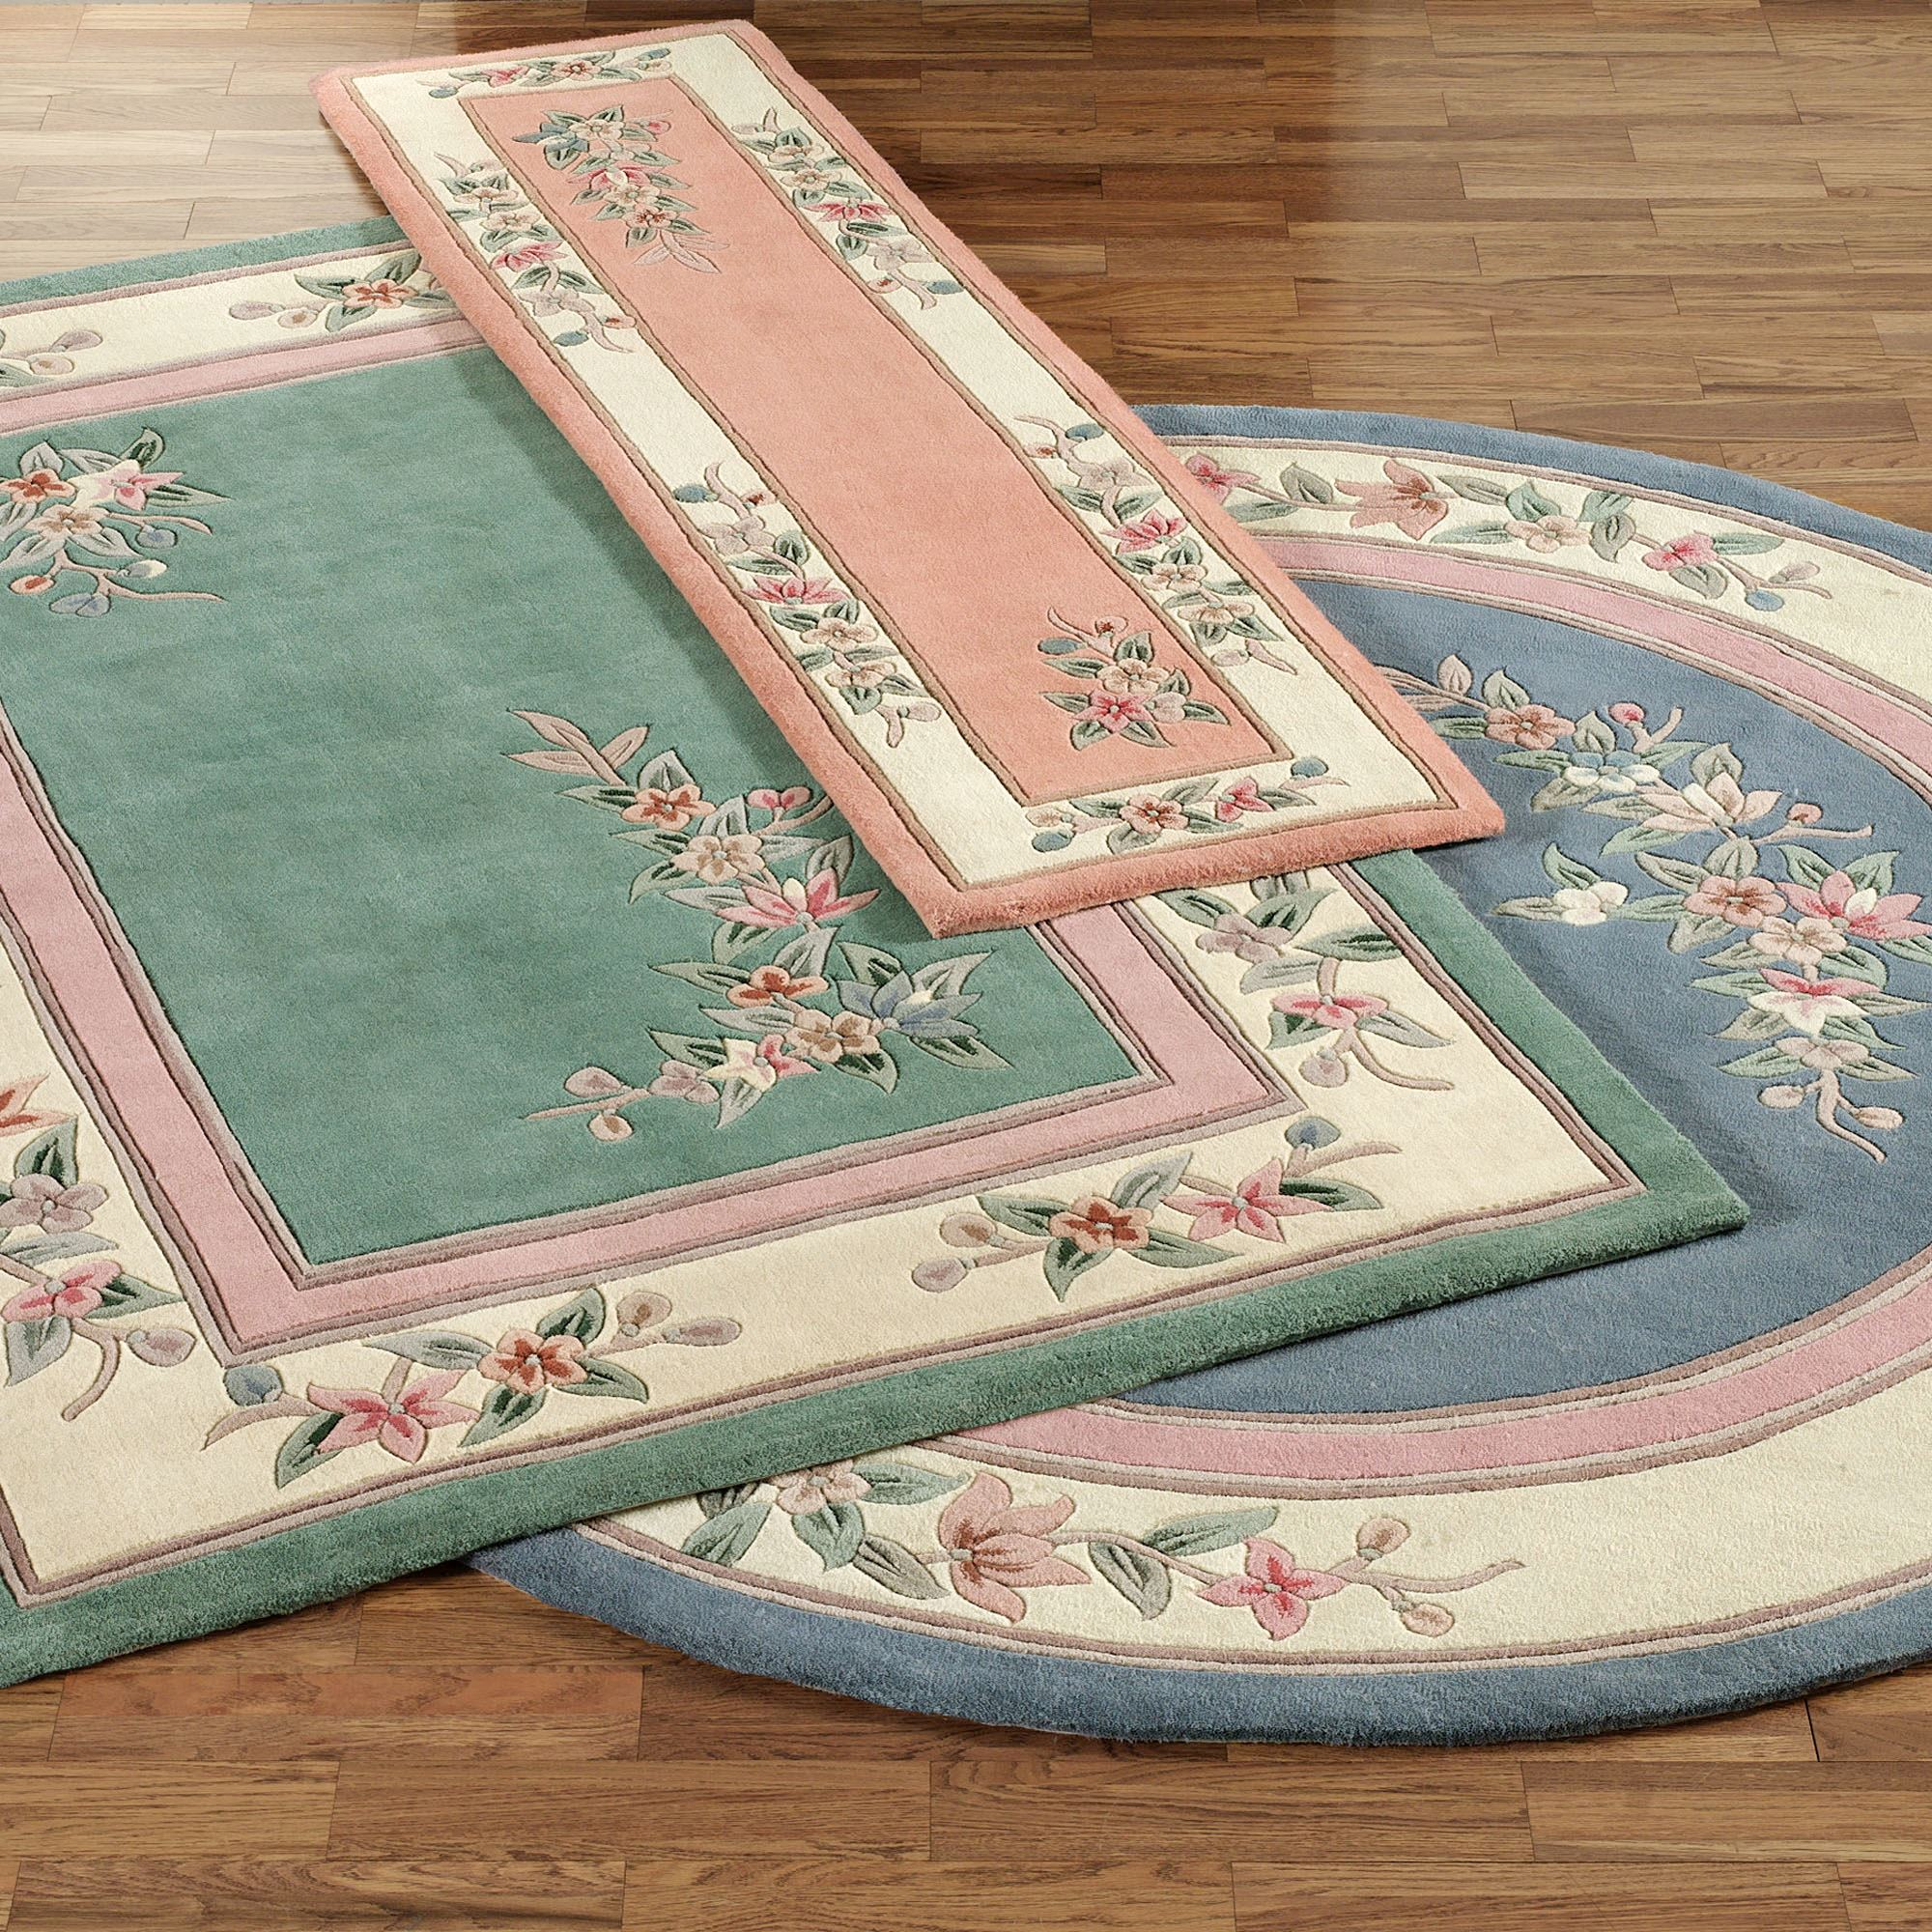 How To Make Area Rug Corners Lay Flat Area Rug Designs